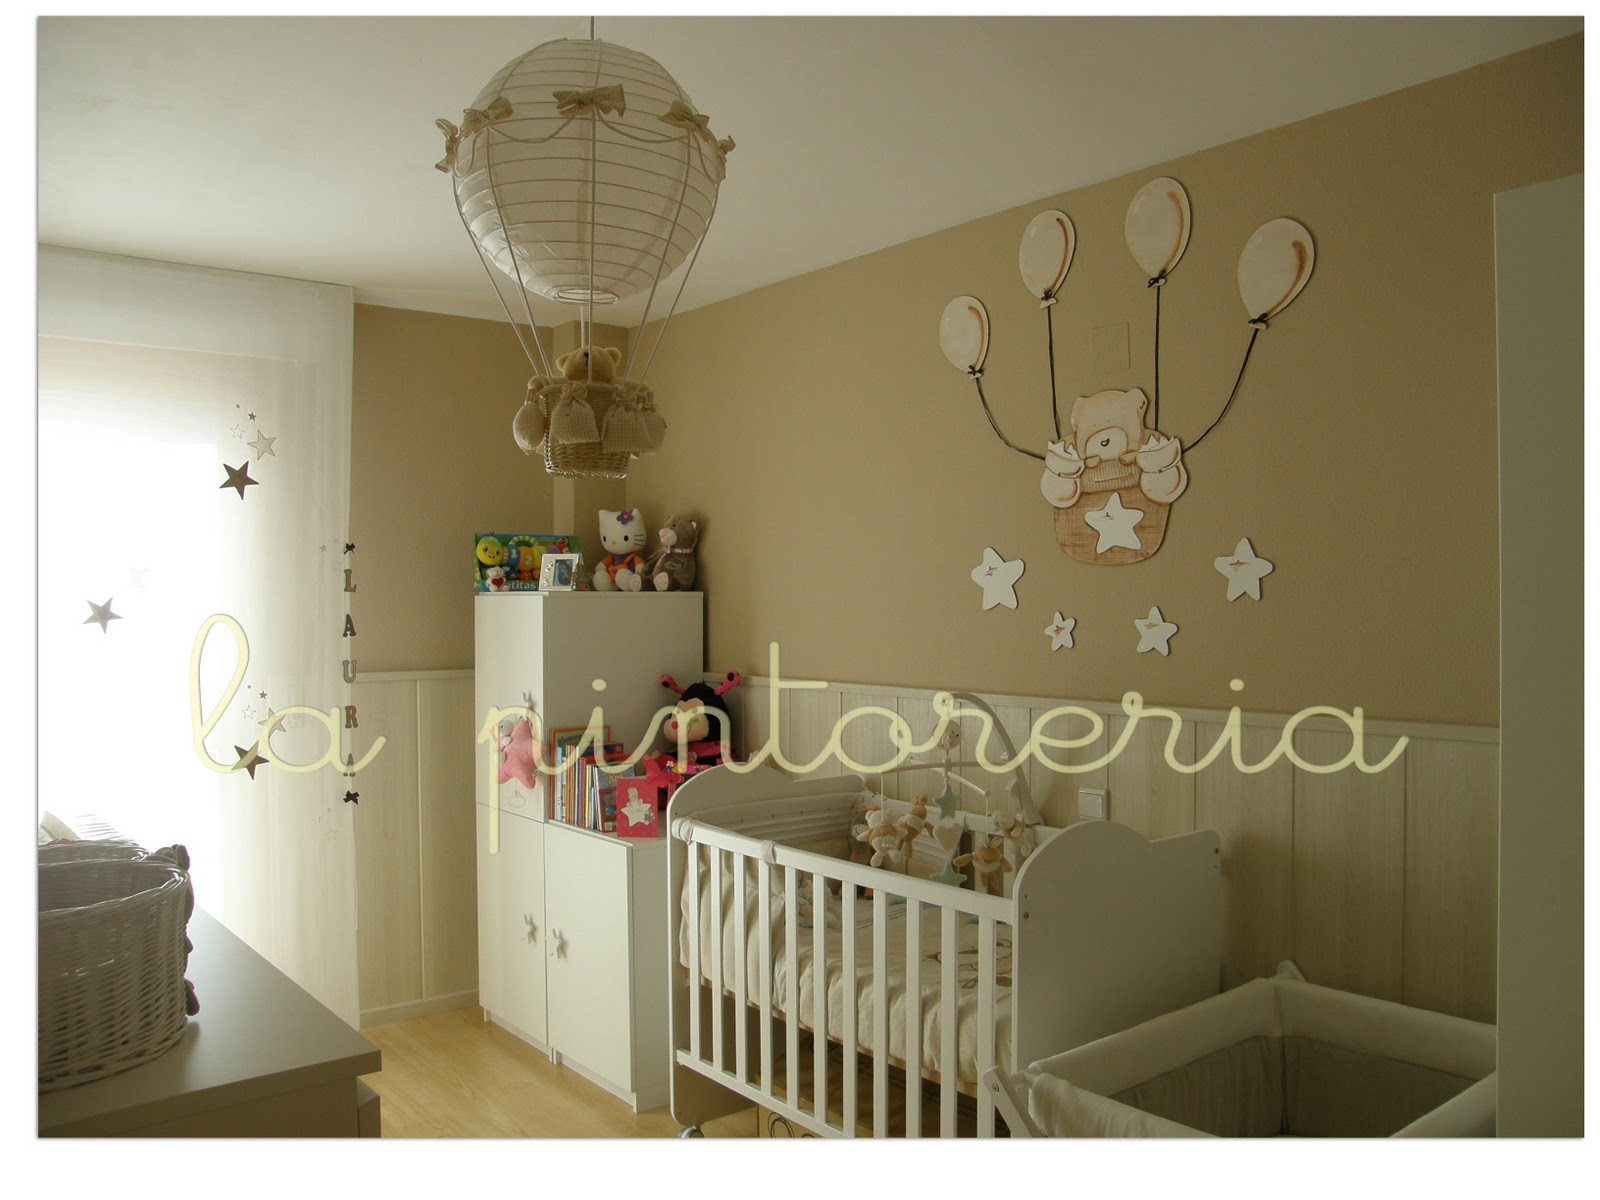 Des murs enchant s decoration chambre bebe avec sticker for Decoration chambre de bebe unisex